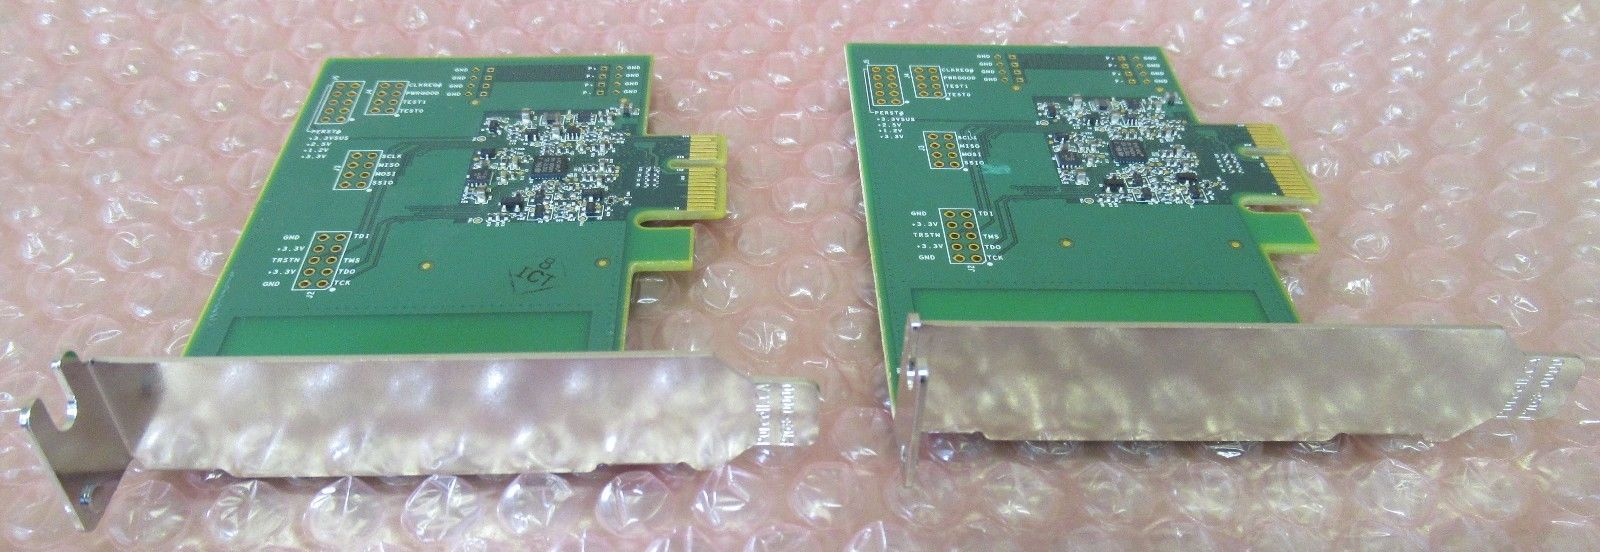 2 x Dell T8V8R Half Height Encryption Secure PCI-e Card